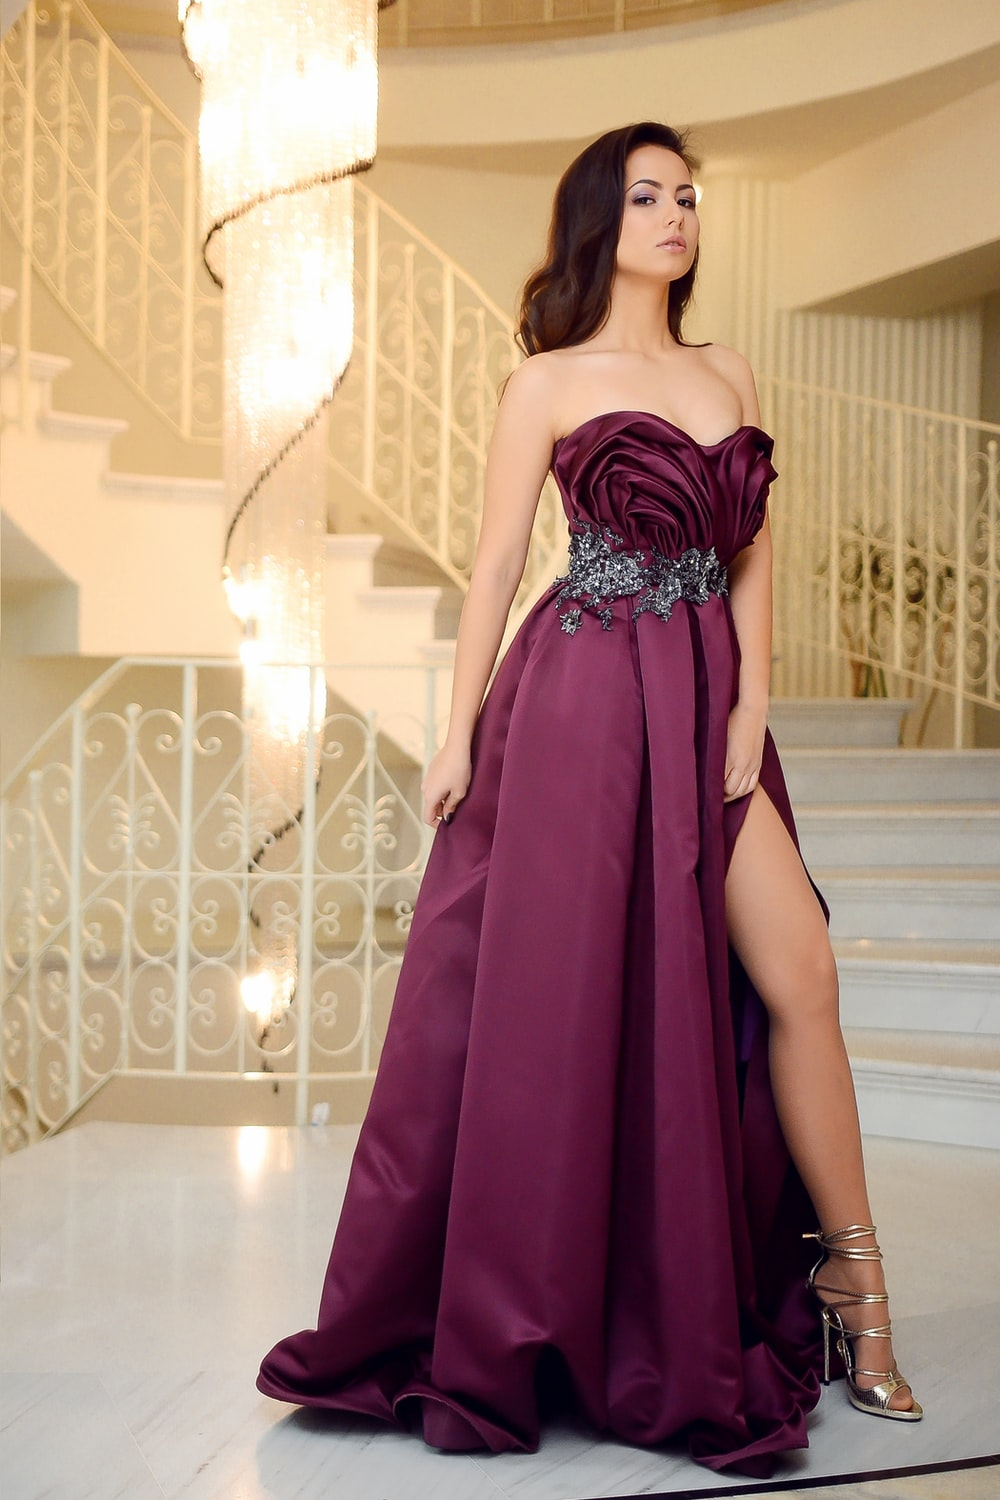 woman in maroon sweetheart gown